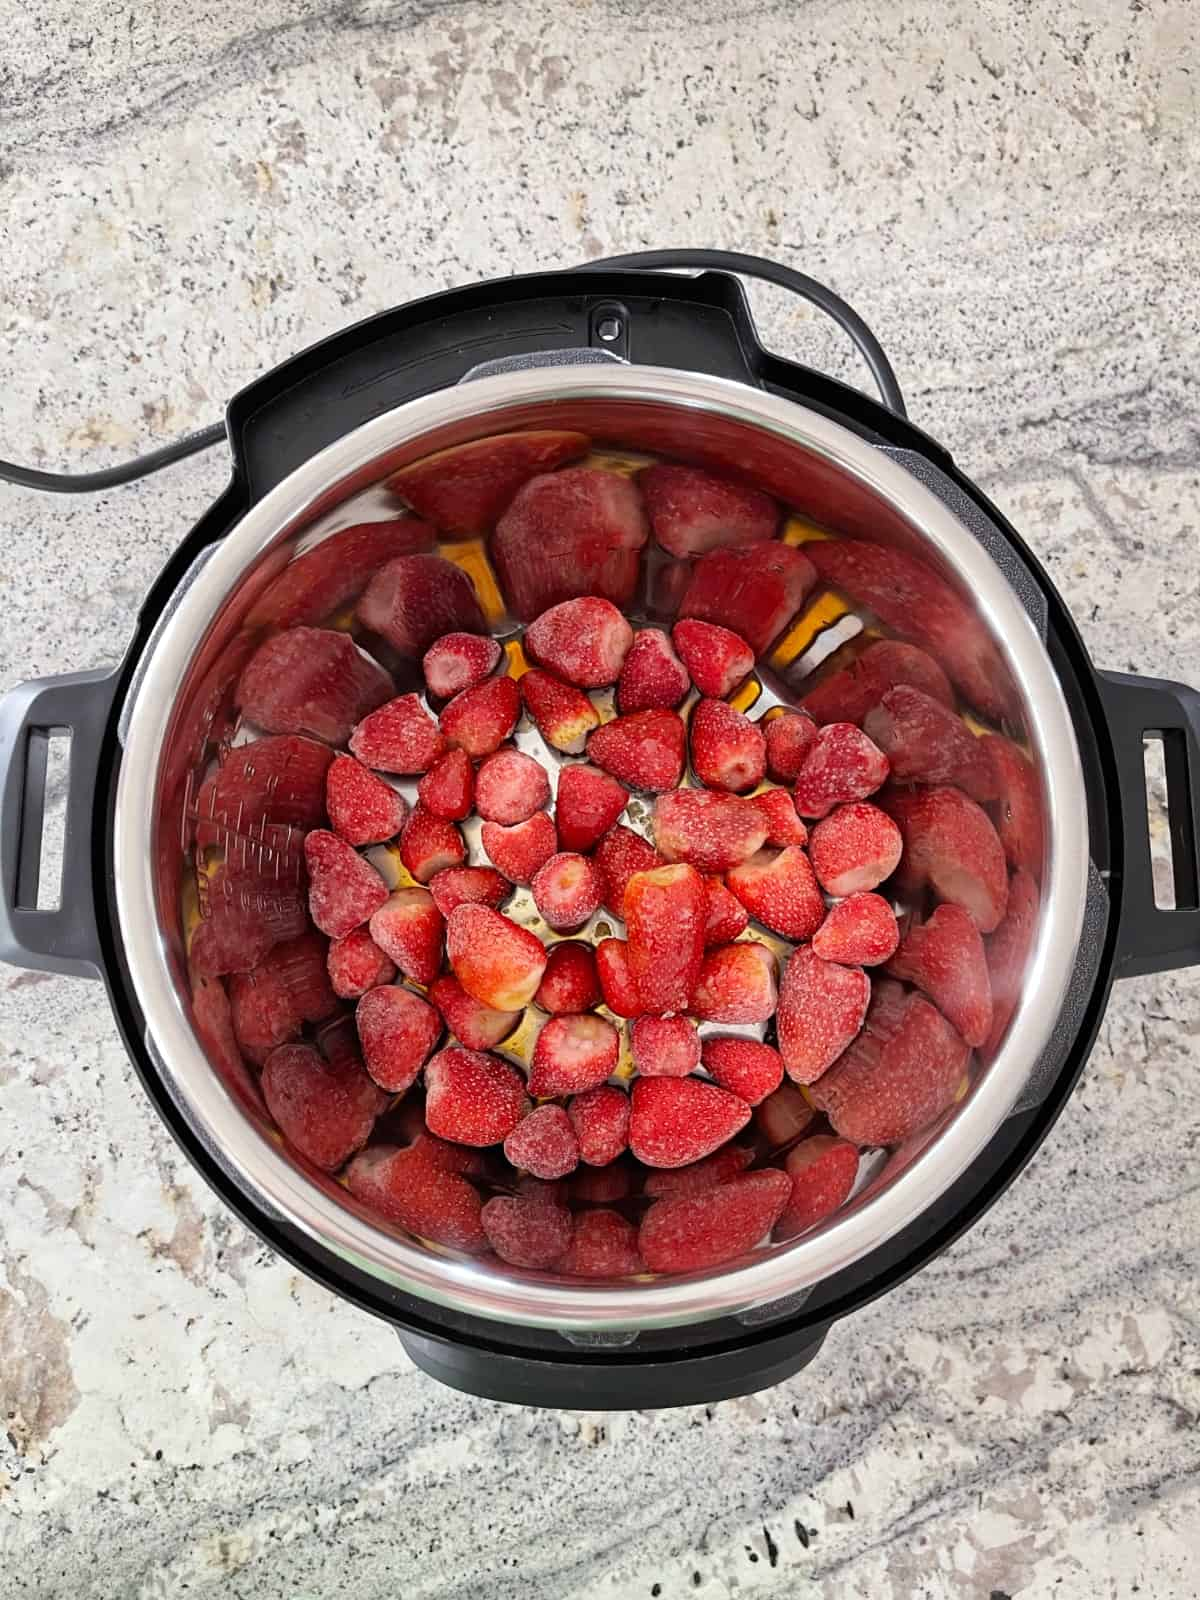 Instant Pot with frozen strawberries and maple syrup on granite counter from above.